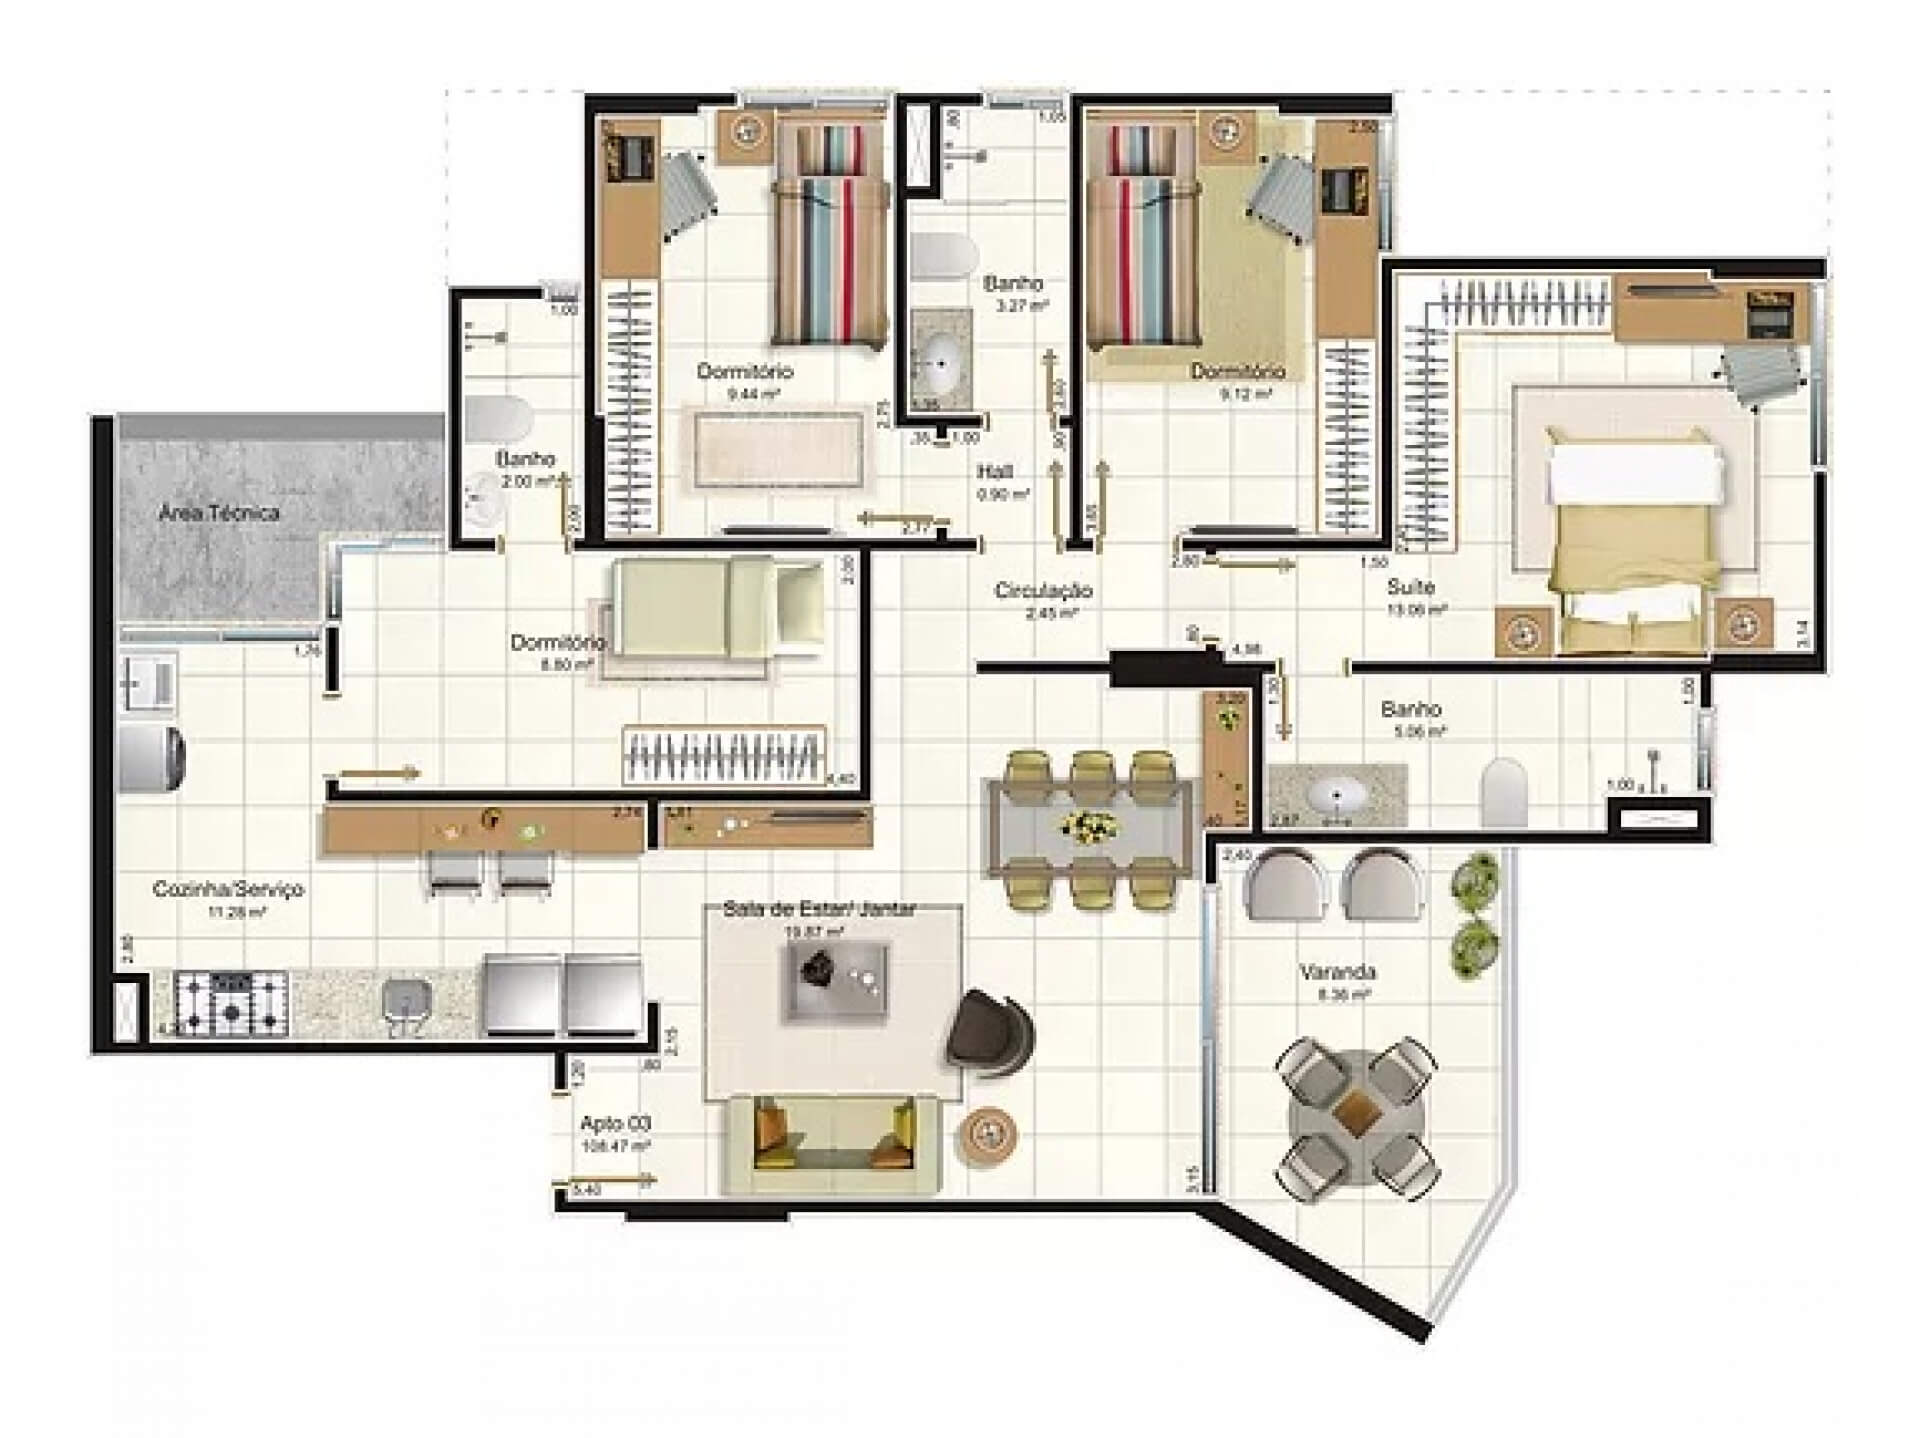 Planta do Rio Poty Boulevard. floorplan